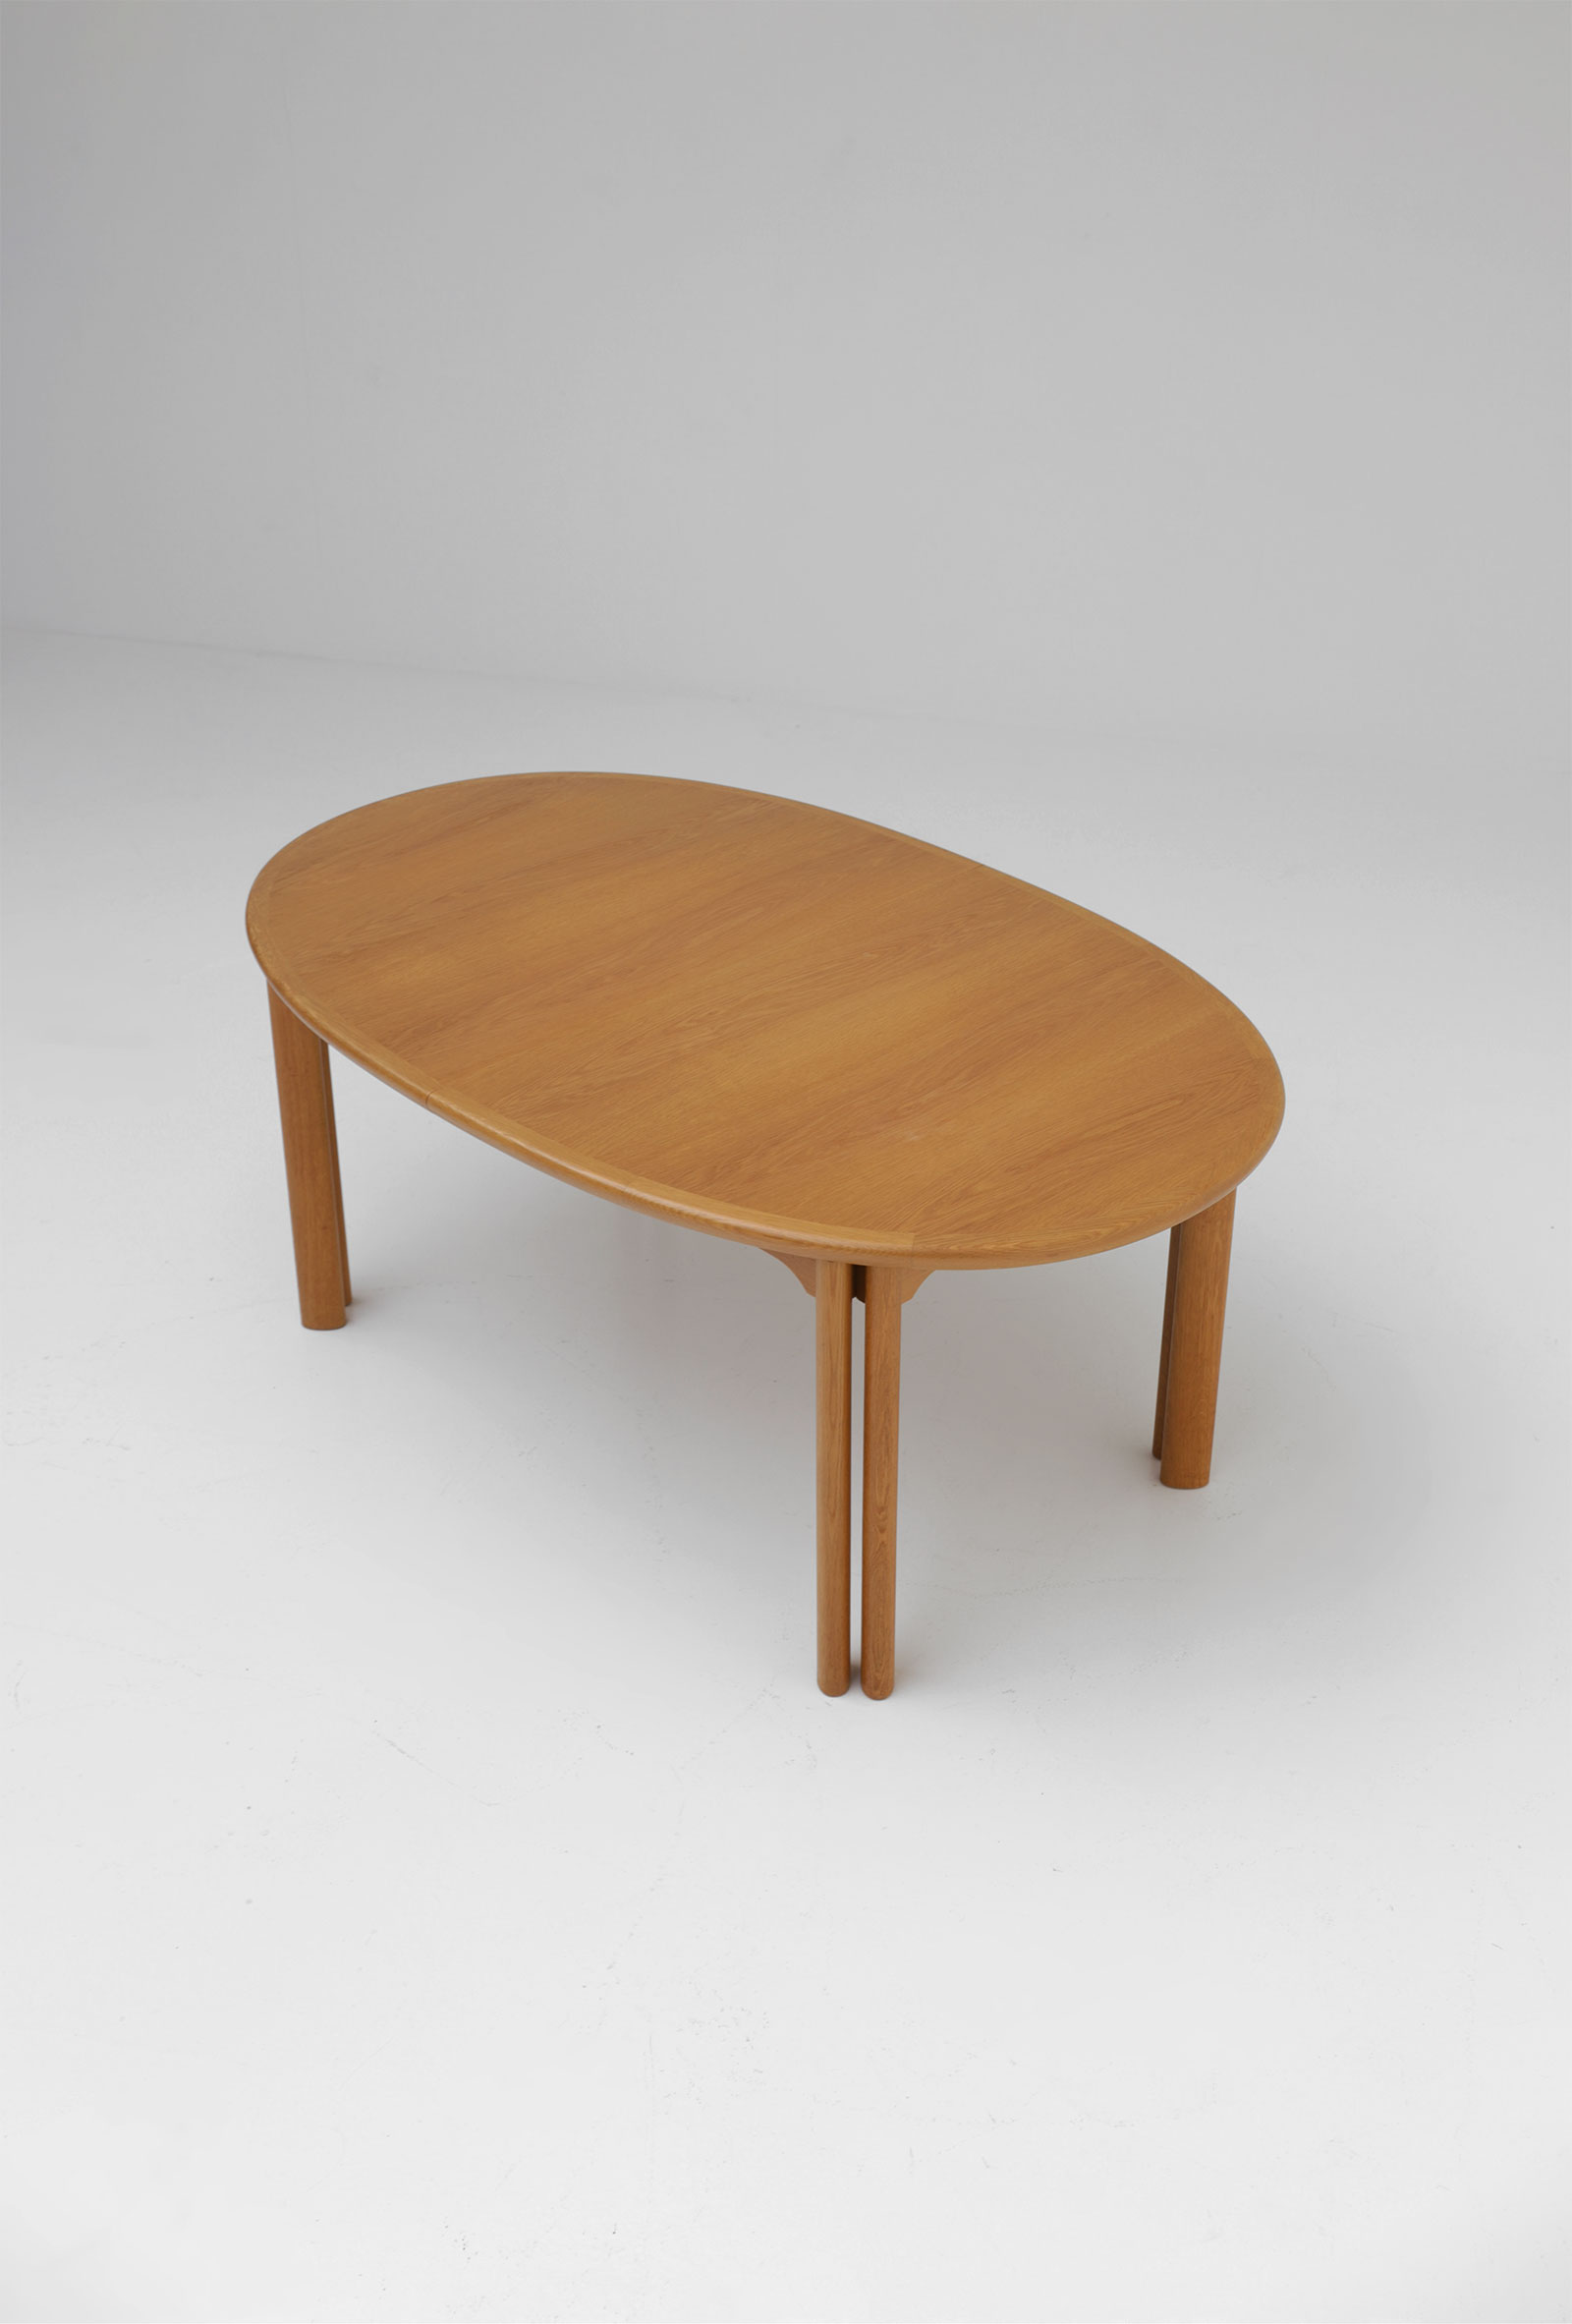 Oak Dining Table Van Den Berghe Pauversimage 1